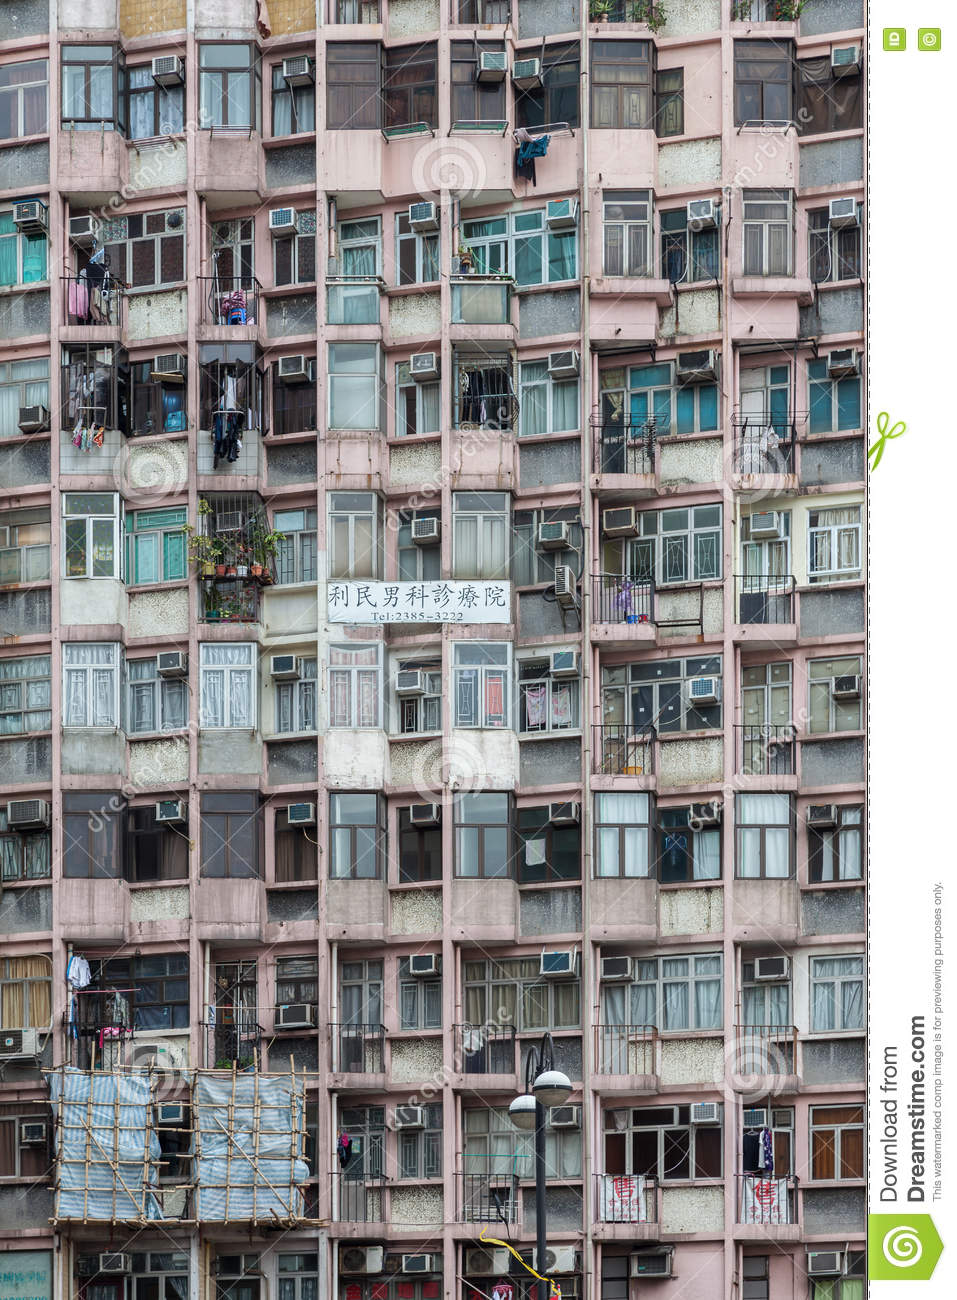 HONGKONG, CHINA/ASIA - FEBRUARY 29 : Apartment block in Hongkong China on February 29, 2012